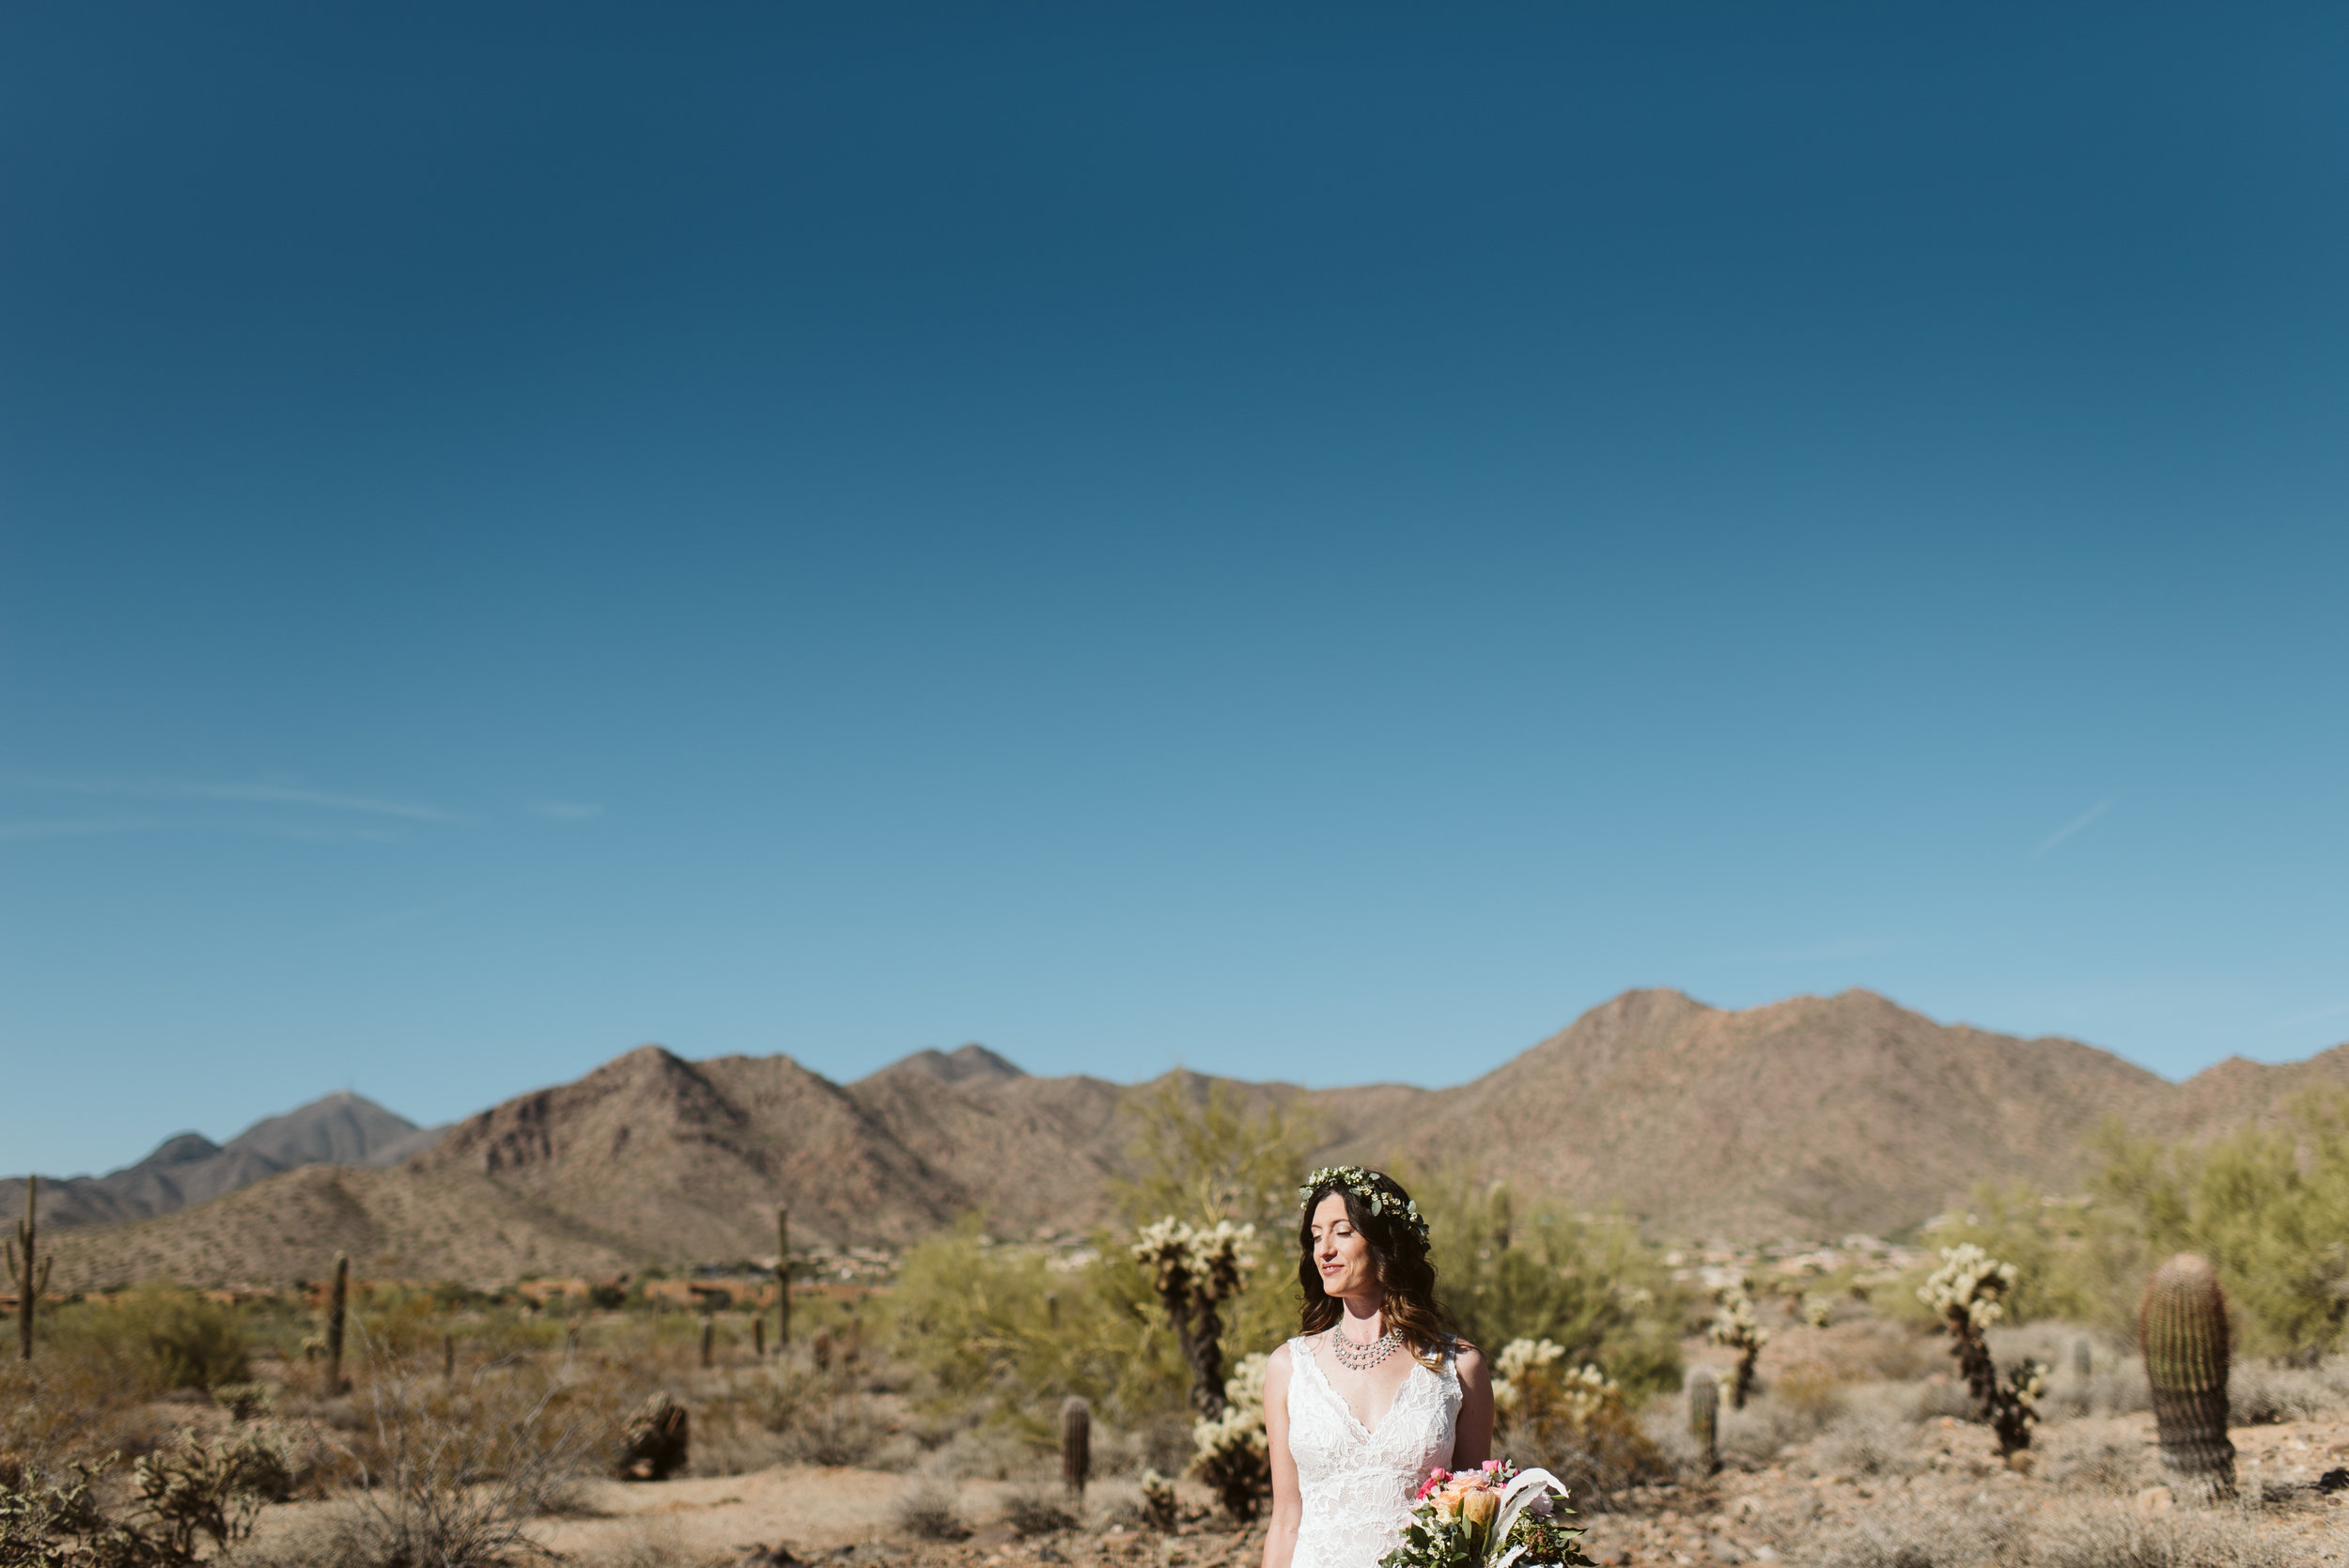 ArizonaWeddingPhotographer_Schad_0211.jpg